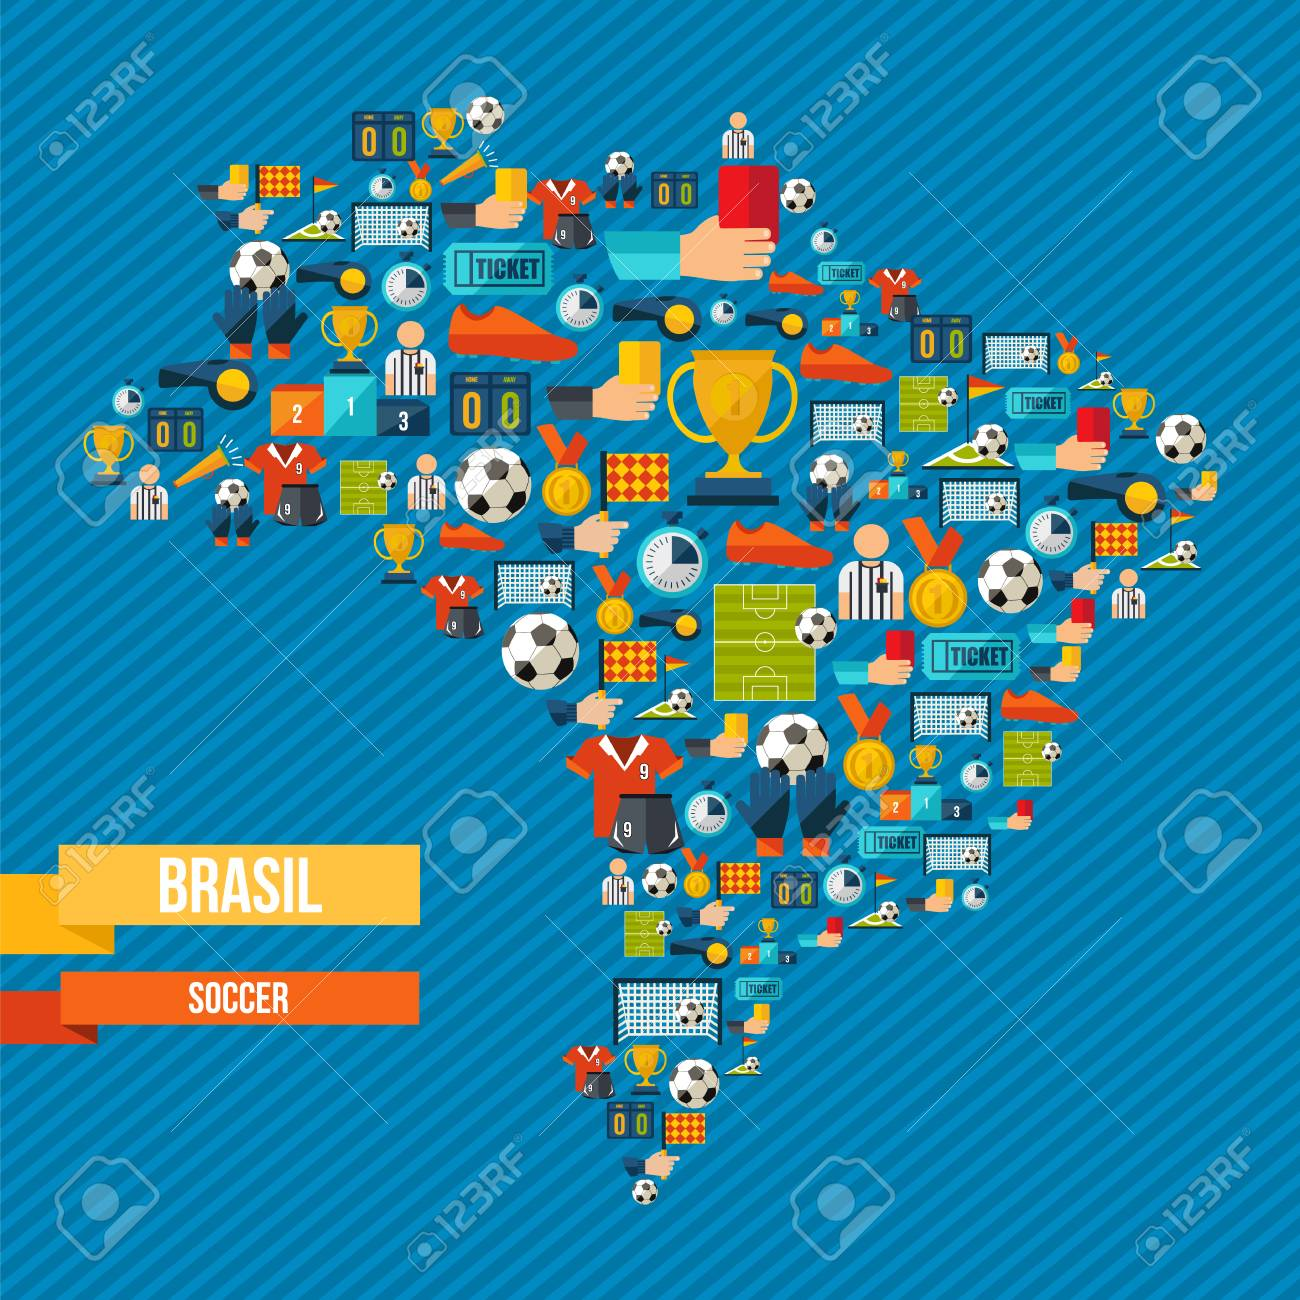 Brazil soccer culture icons in country map includes sport elements brazil soccer culture icons in country map includes sport elements for football game ball gumiabroncs Choice Image